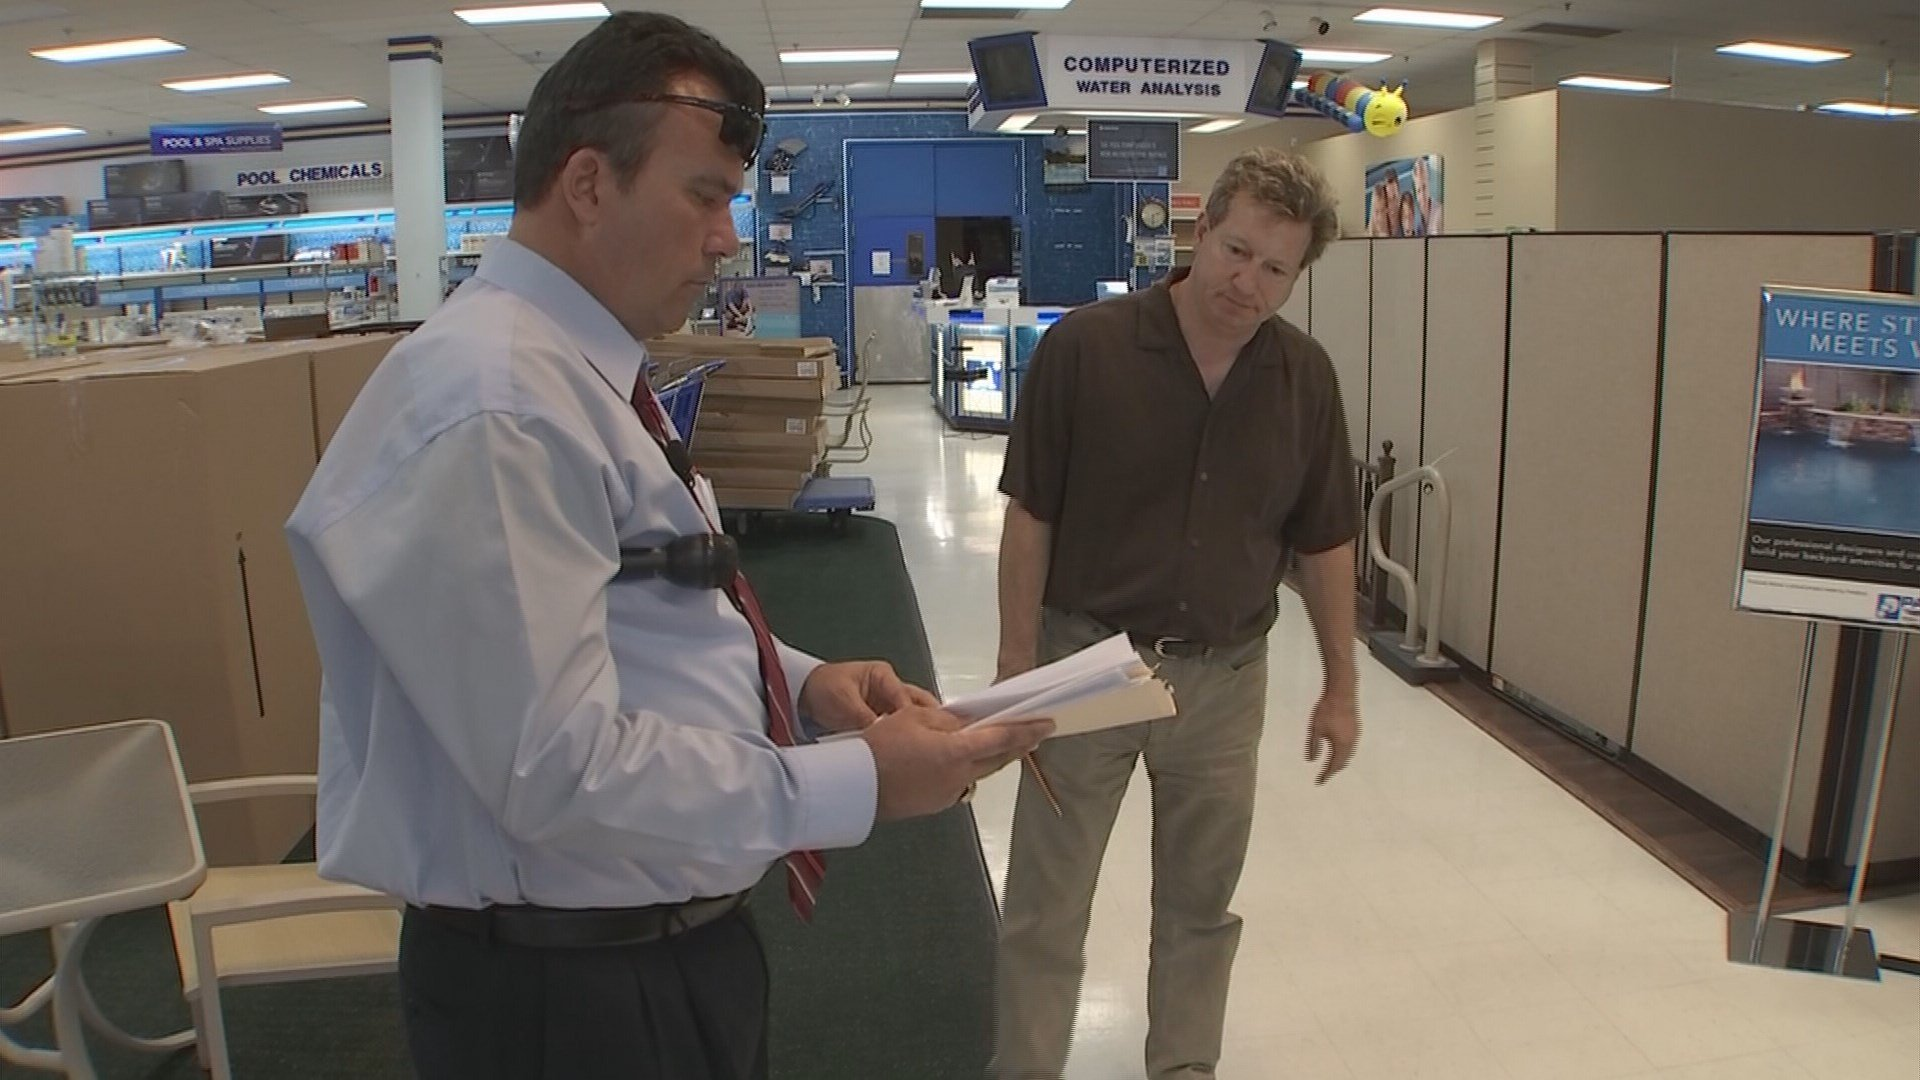 Gary Harper went to Paddock's company headquarters to get answers. (Source: 3TV)